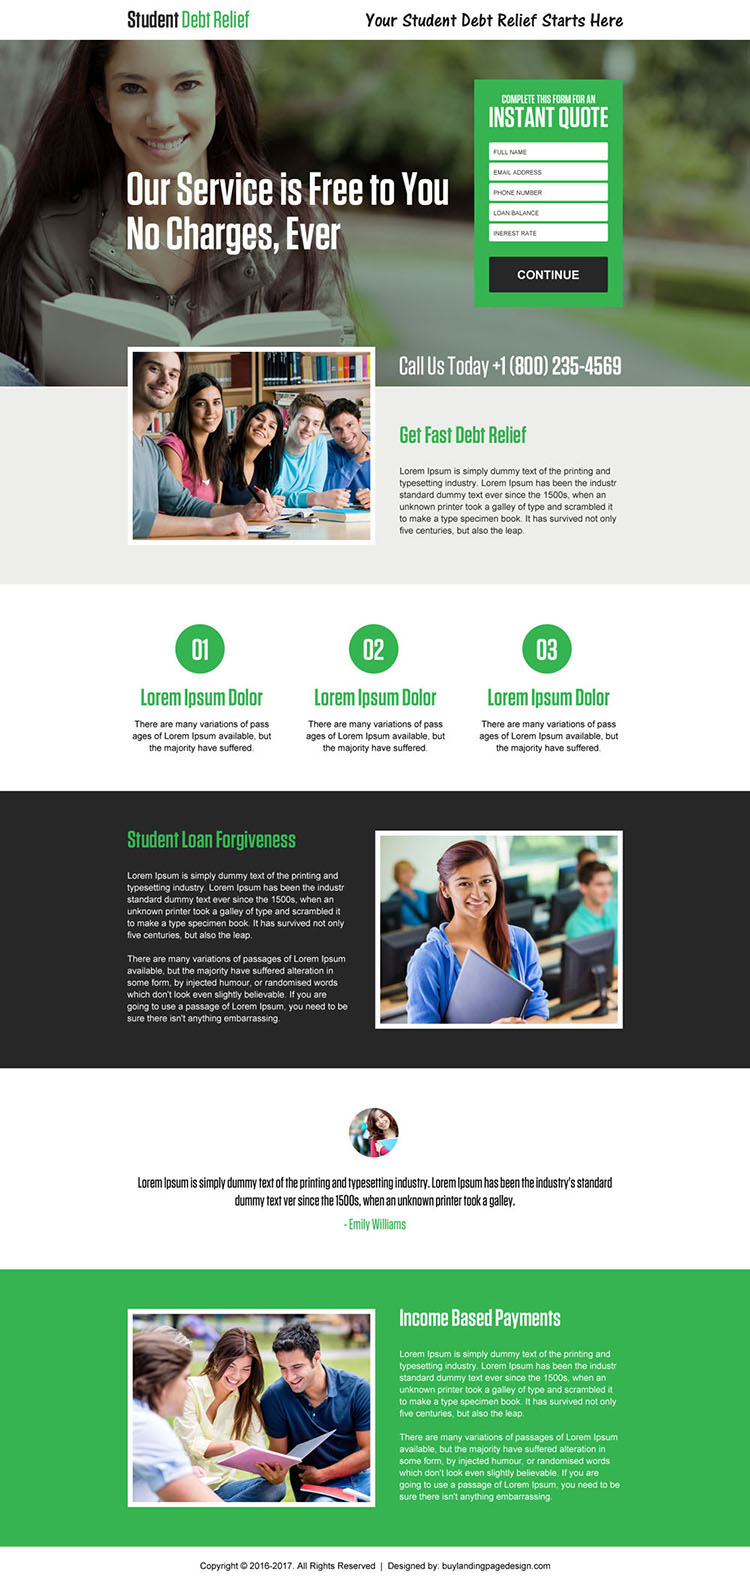 student debt relief instant quote responsive landing page design